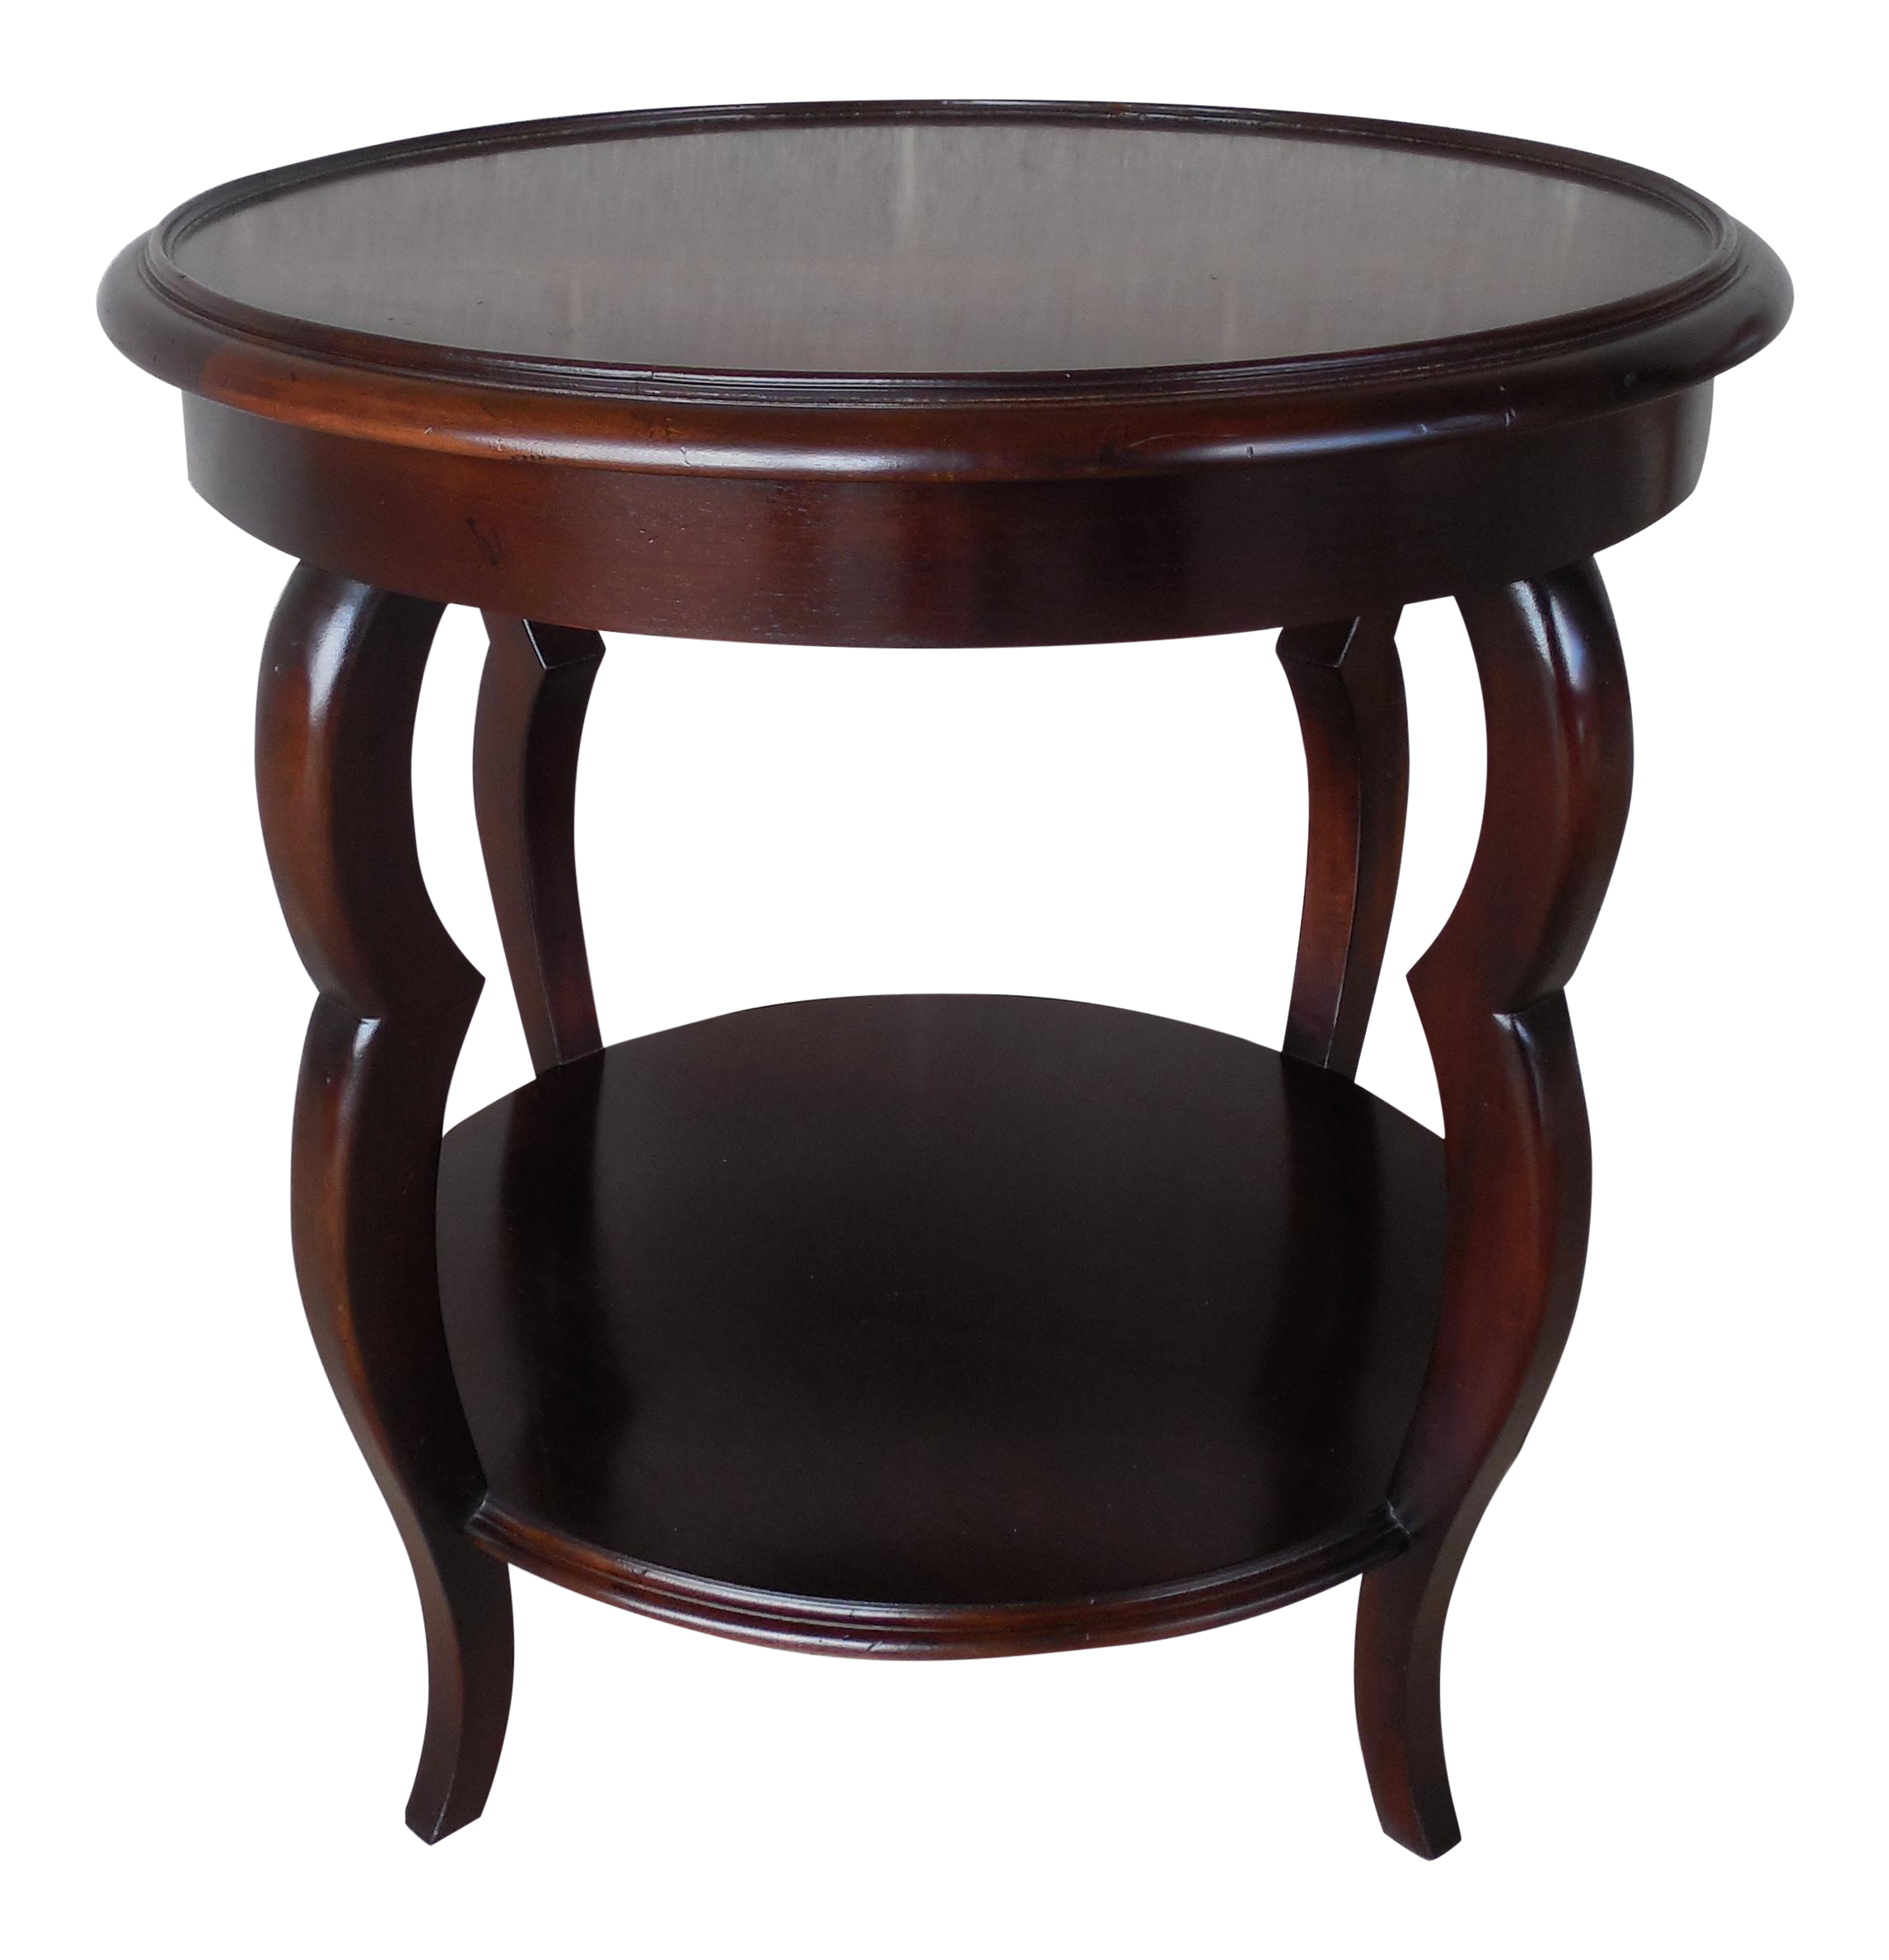 Delightful Baker Milling Road Round Mahogany Accent Table